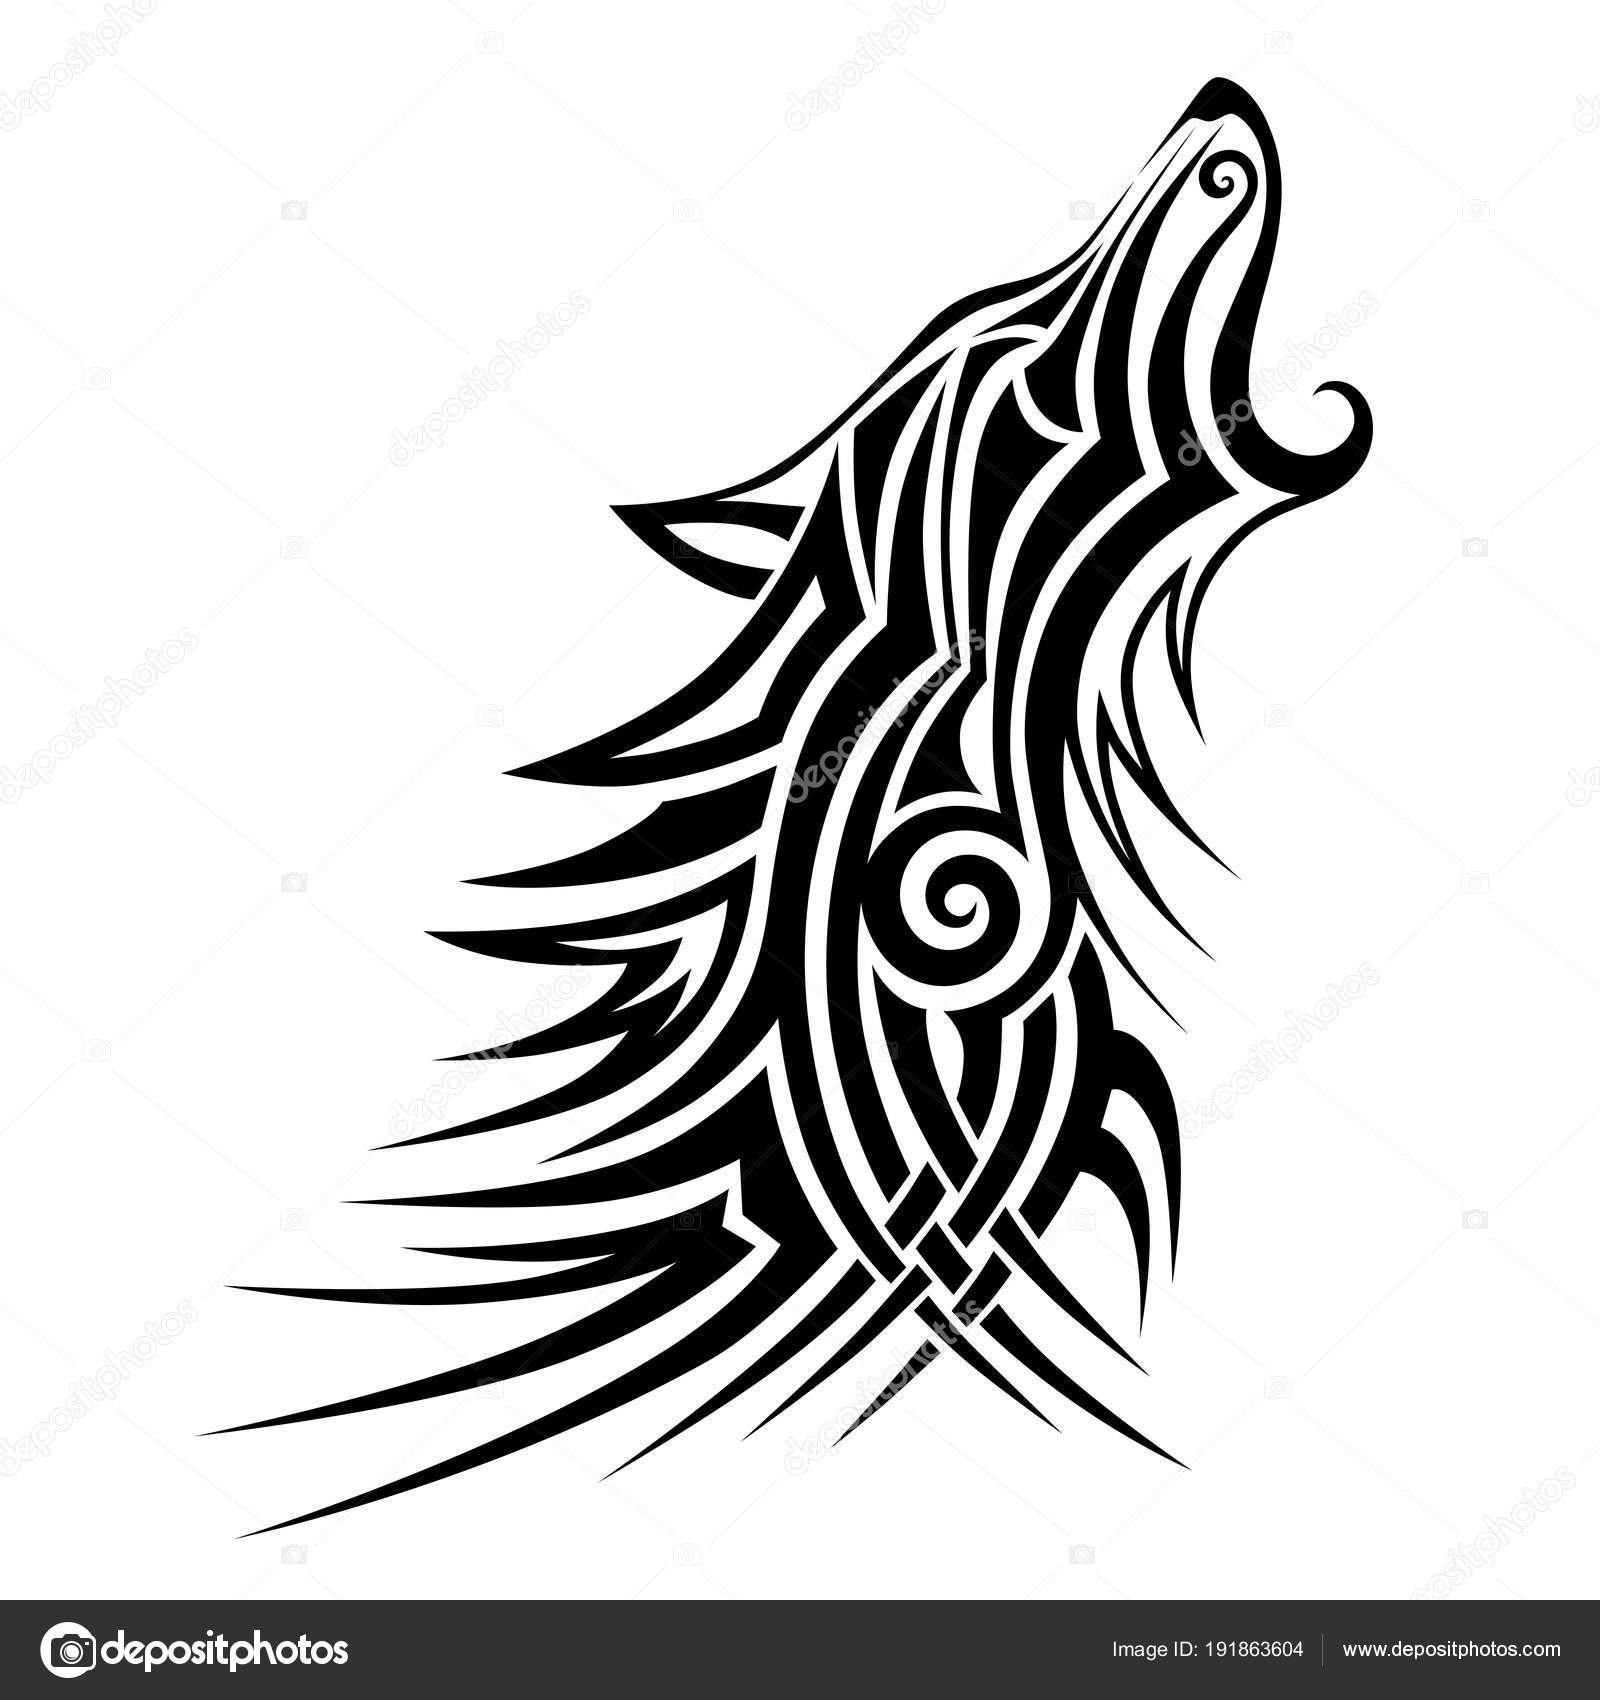 1c7c44f5ef6ce Tribal Wolf Tattoo Black Design Vector Art Idea Sketch Isolated — Stock  Vector